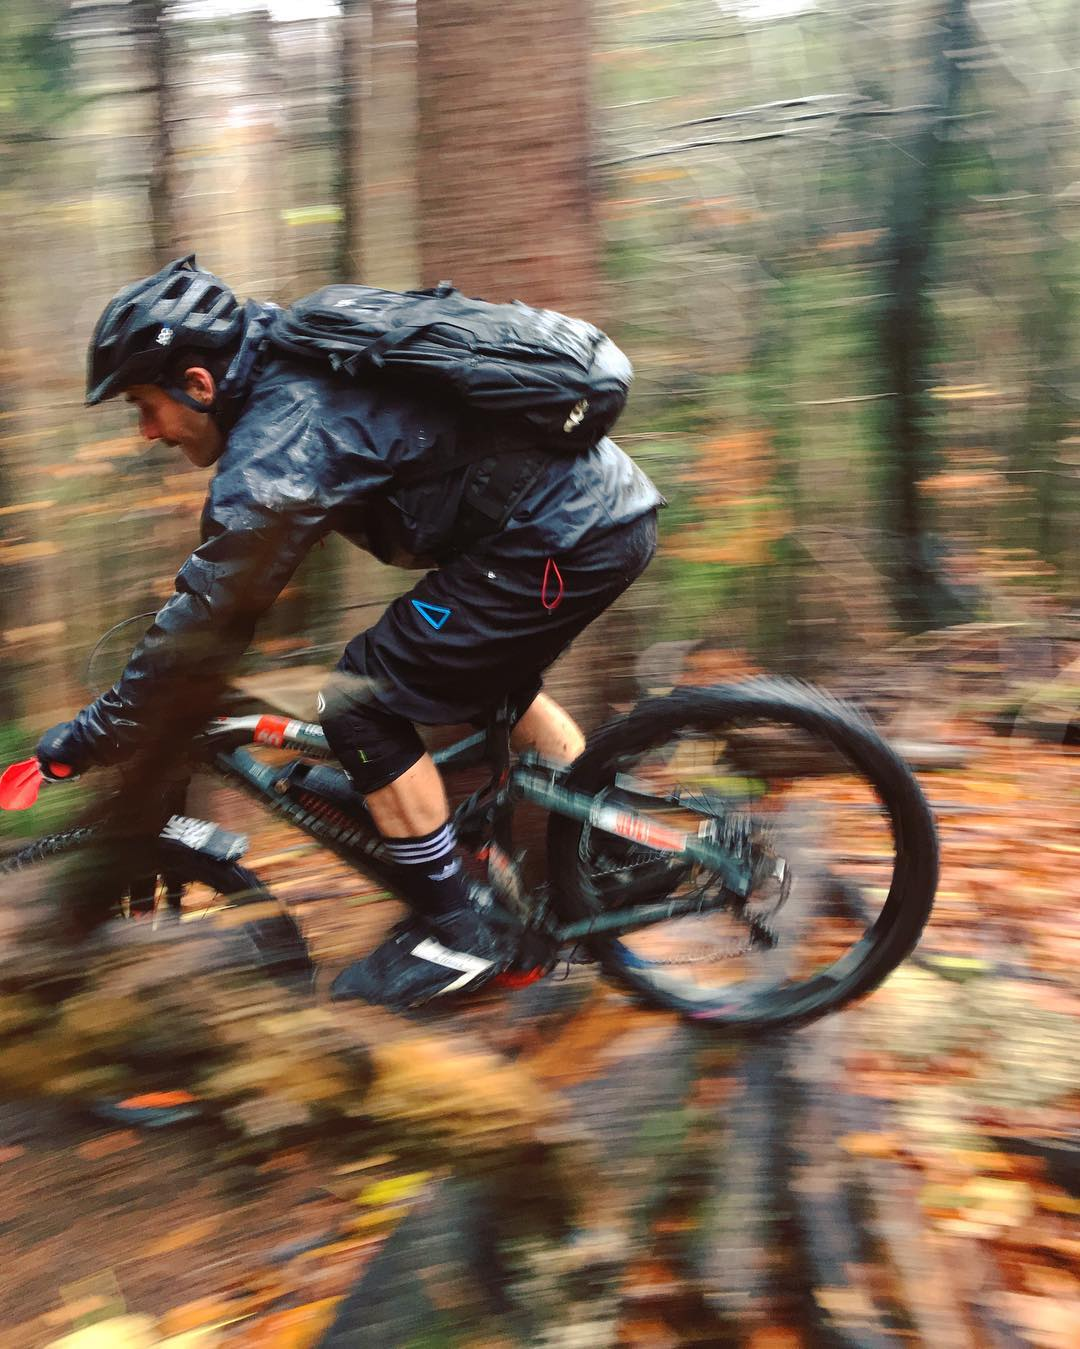 Wet and wild in the woods today! #rideordie #mtb #haibike #design #emtb #weareeperformance #bike #adidasmtb #adidasbike